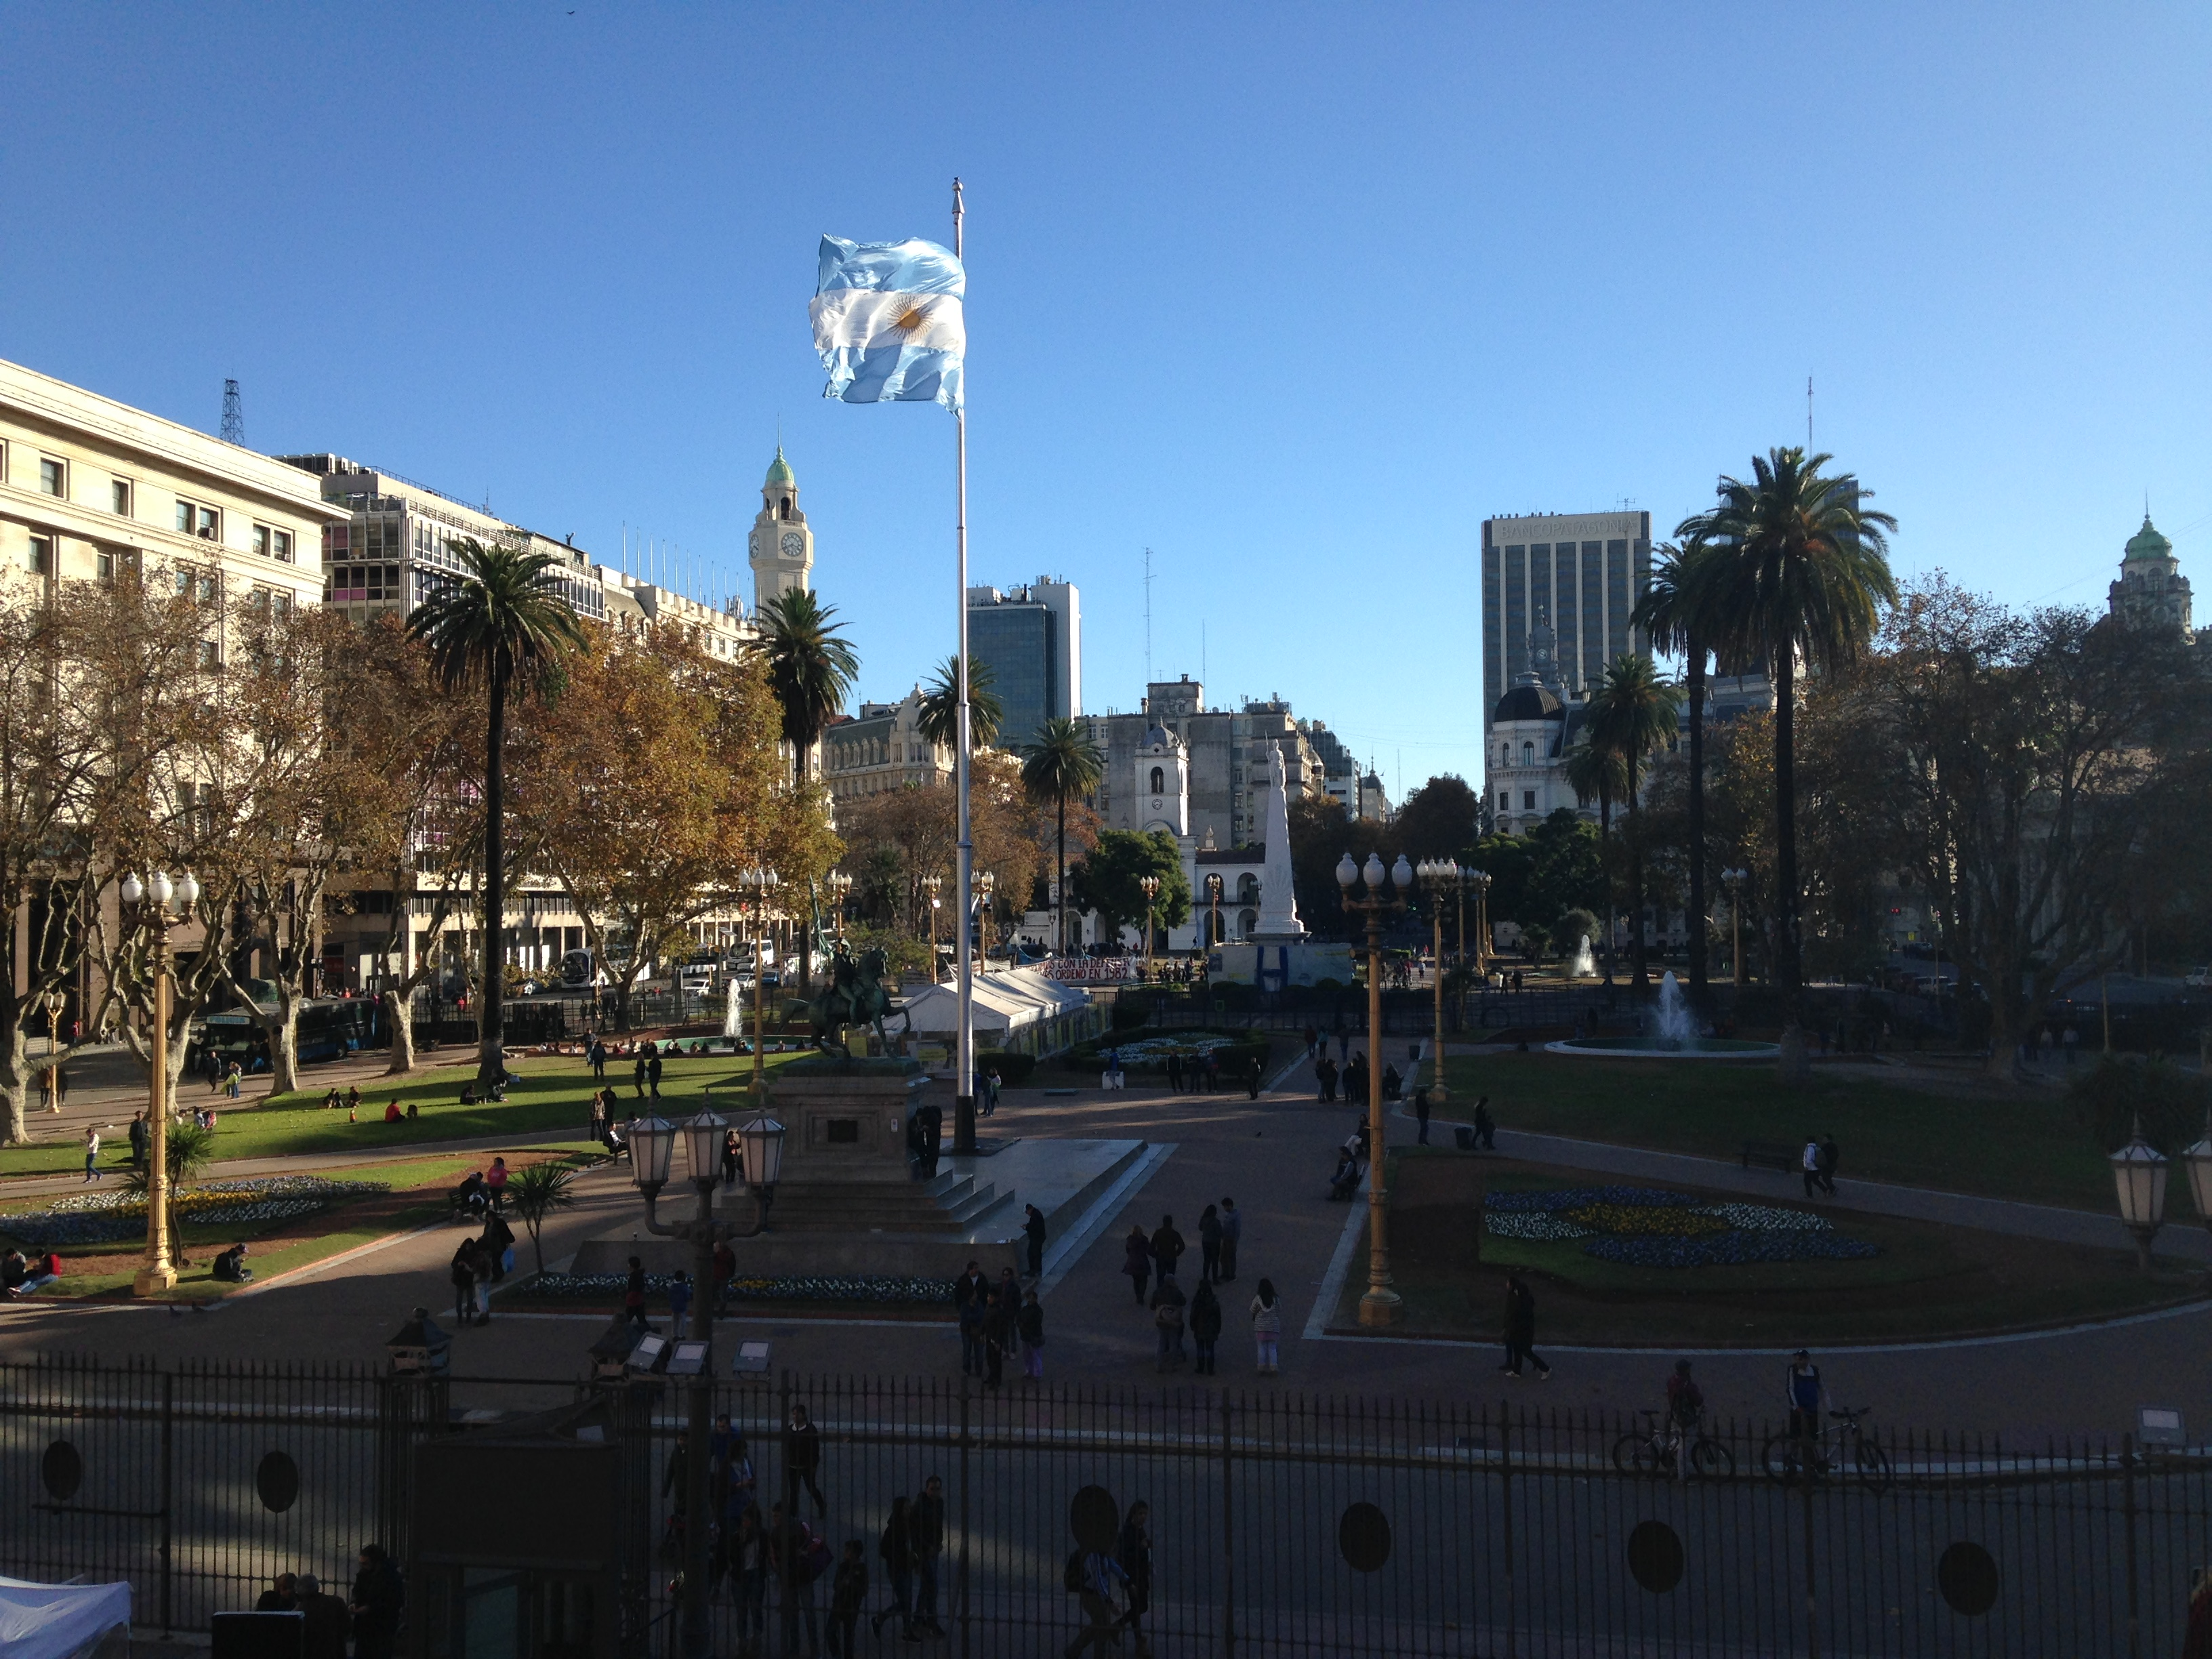 pvt-argentine-buenosaires-plaza-mayo